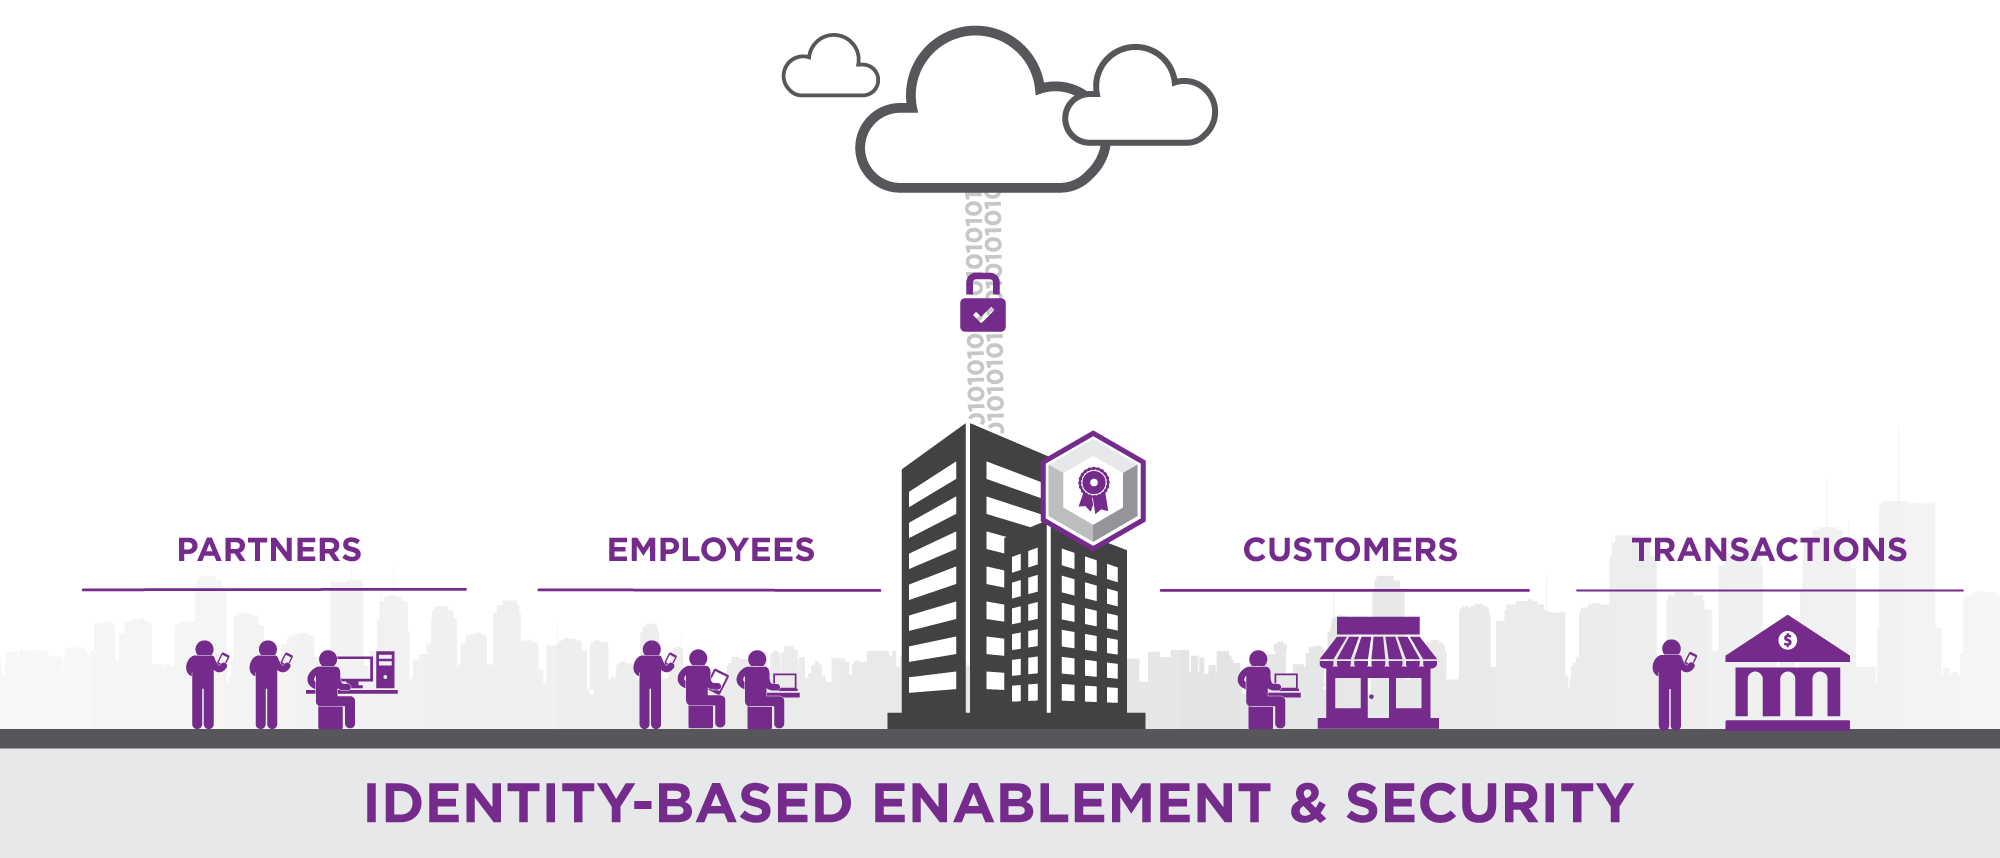 Identity-Based Enablement & Security